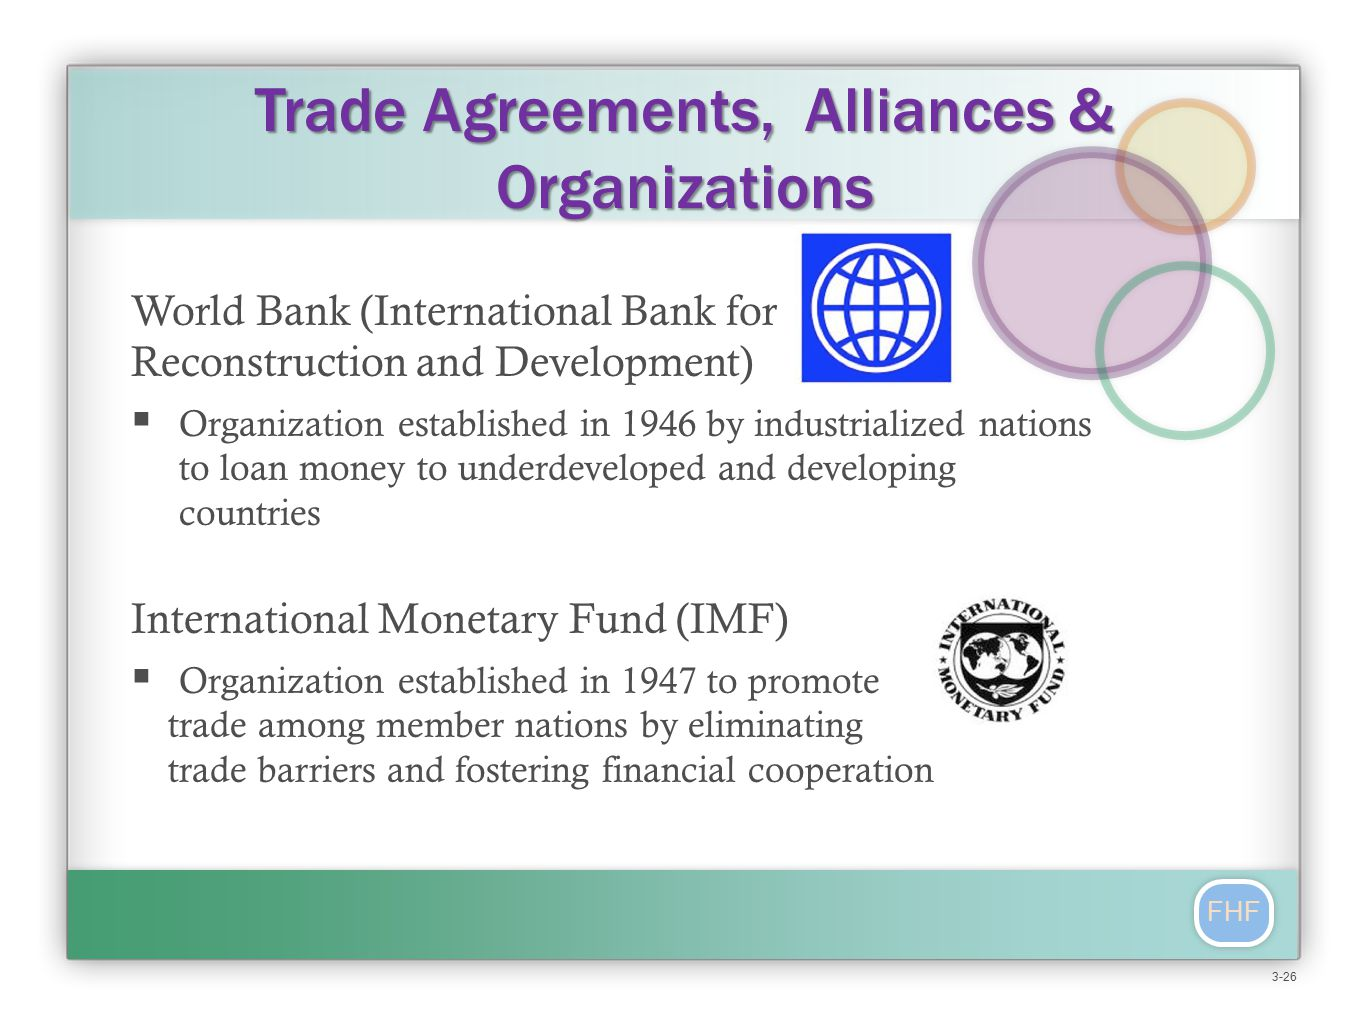 FHF Trade Agreements, Alliances & Organizations World Bank (International Bank for Reconstruction and Development)  Organization established in 1946 by industrialized nations to loan money to underdeveloped and developing countries International Monetary Fund (IMF)  Organization established in 1947 to promote trade among member nations by eliminating trade barriers and fostering financial cooperation 3-26